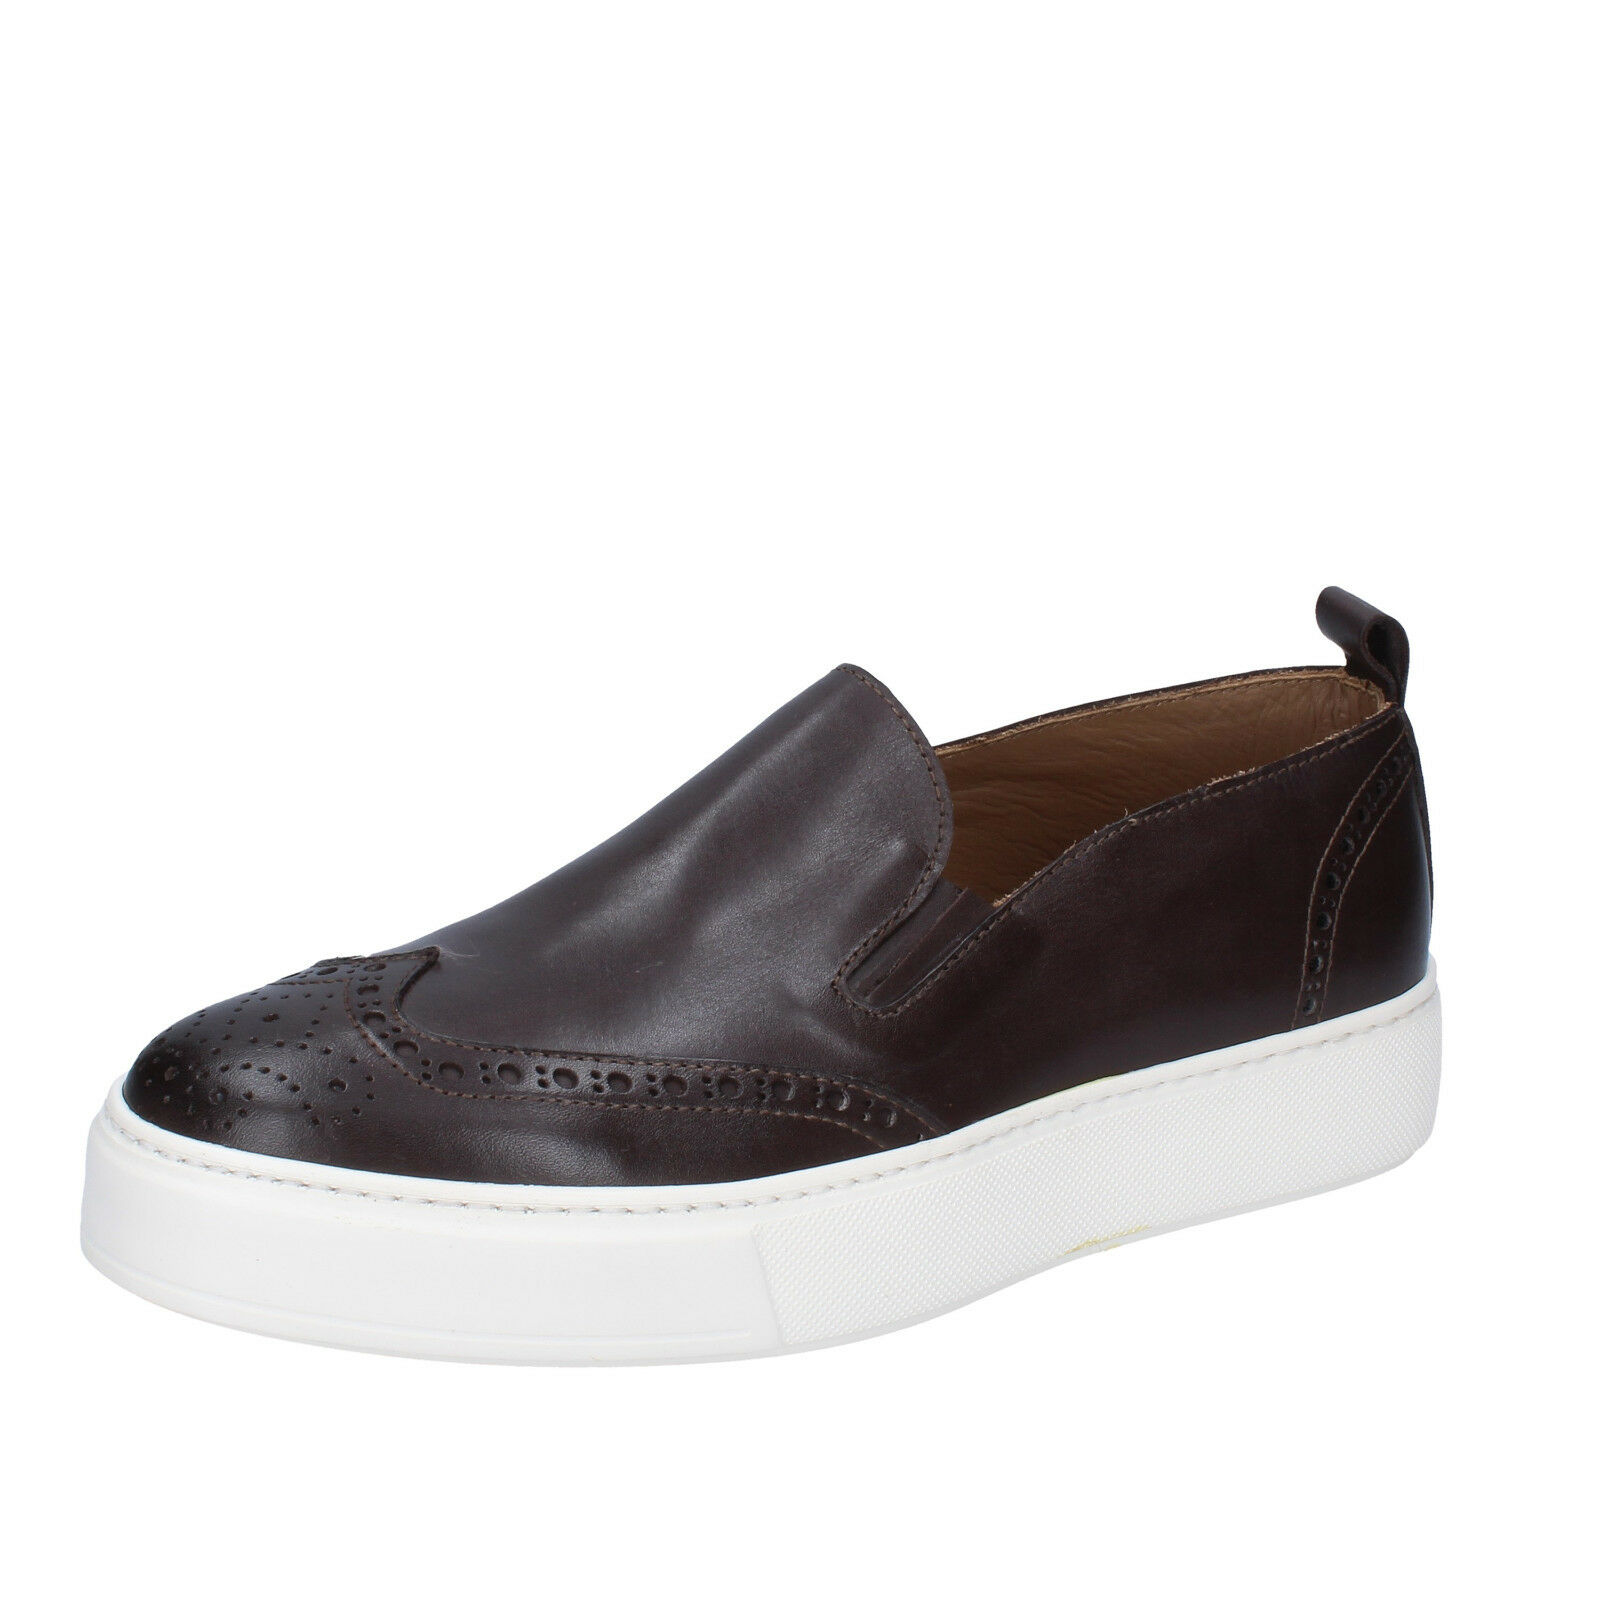 men's shoes DI MELLA 8 () loafers brown leather AB998-C